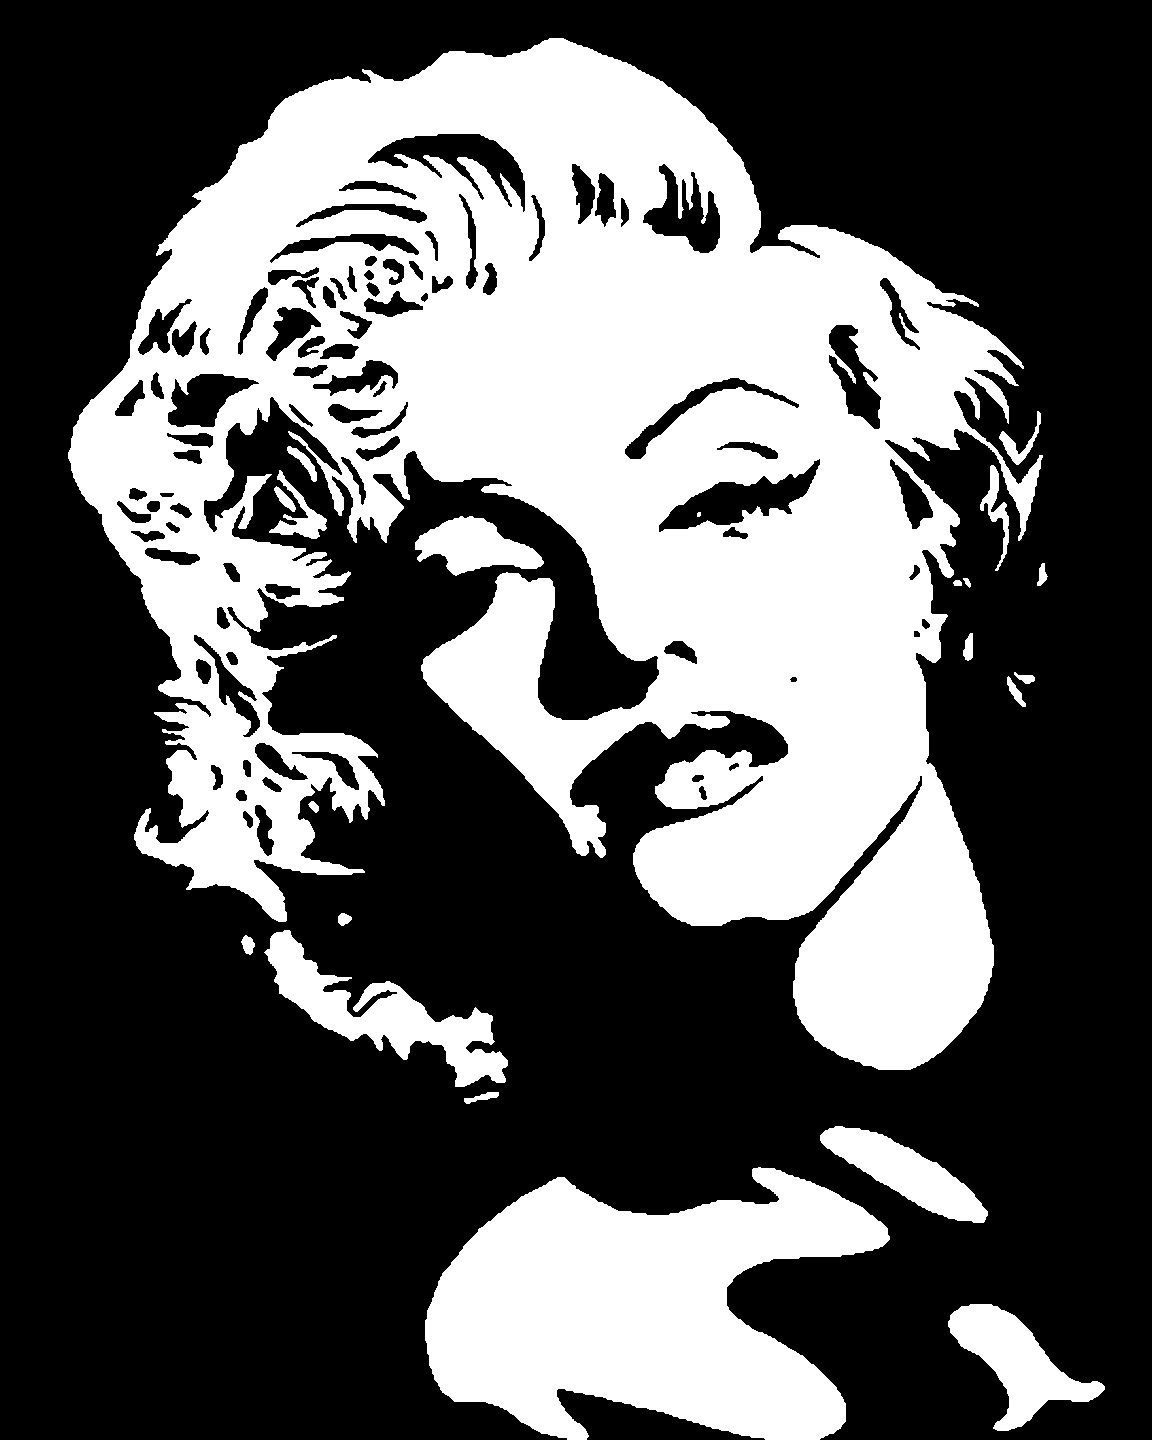 ... And White Outline also with marilyn monroe coloring pages to print